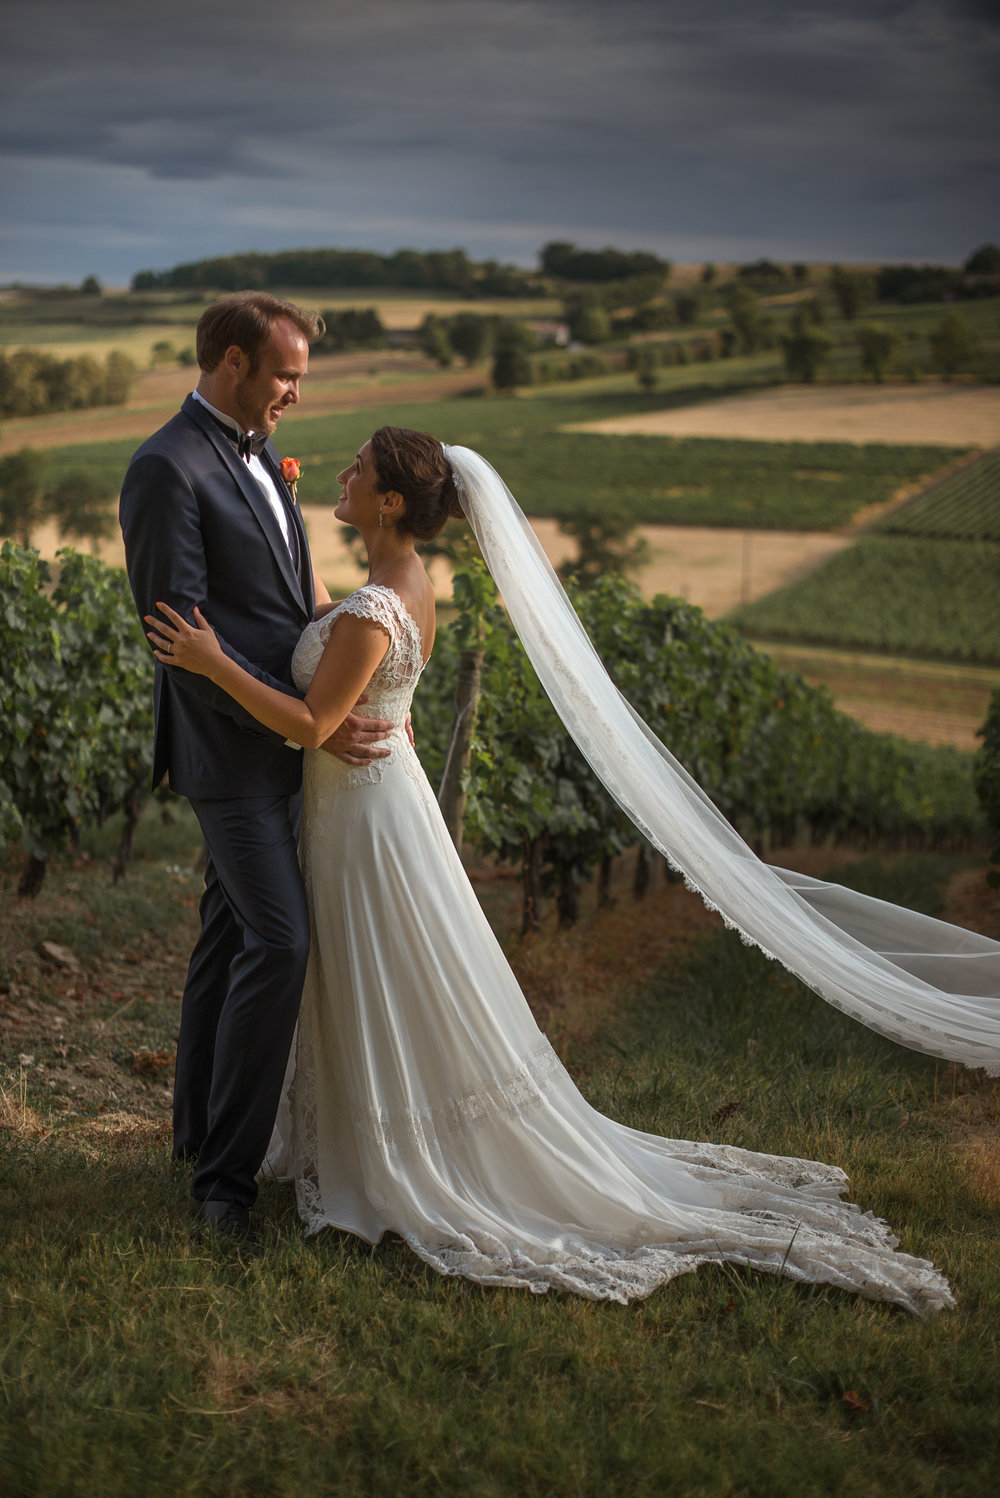 French Vineyard Wedding Toulouse | Chateau de Mauriac | Emeris Photography